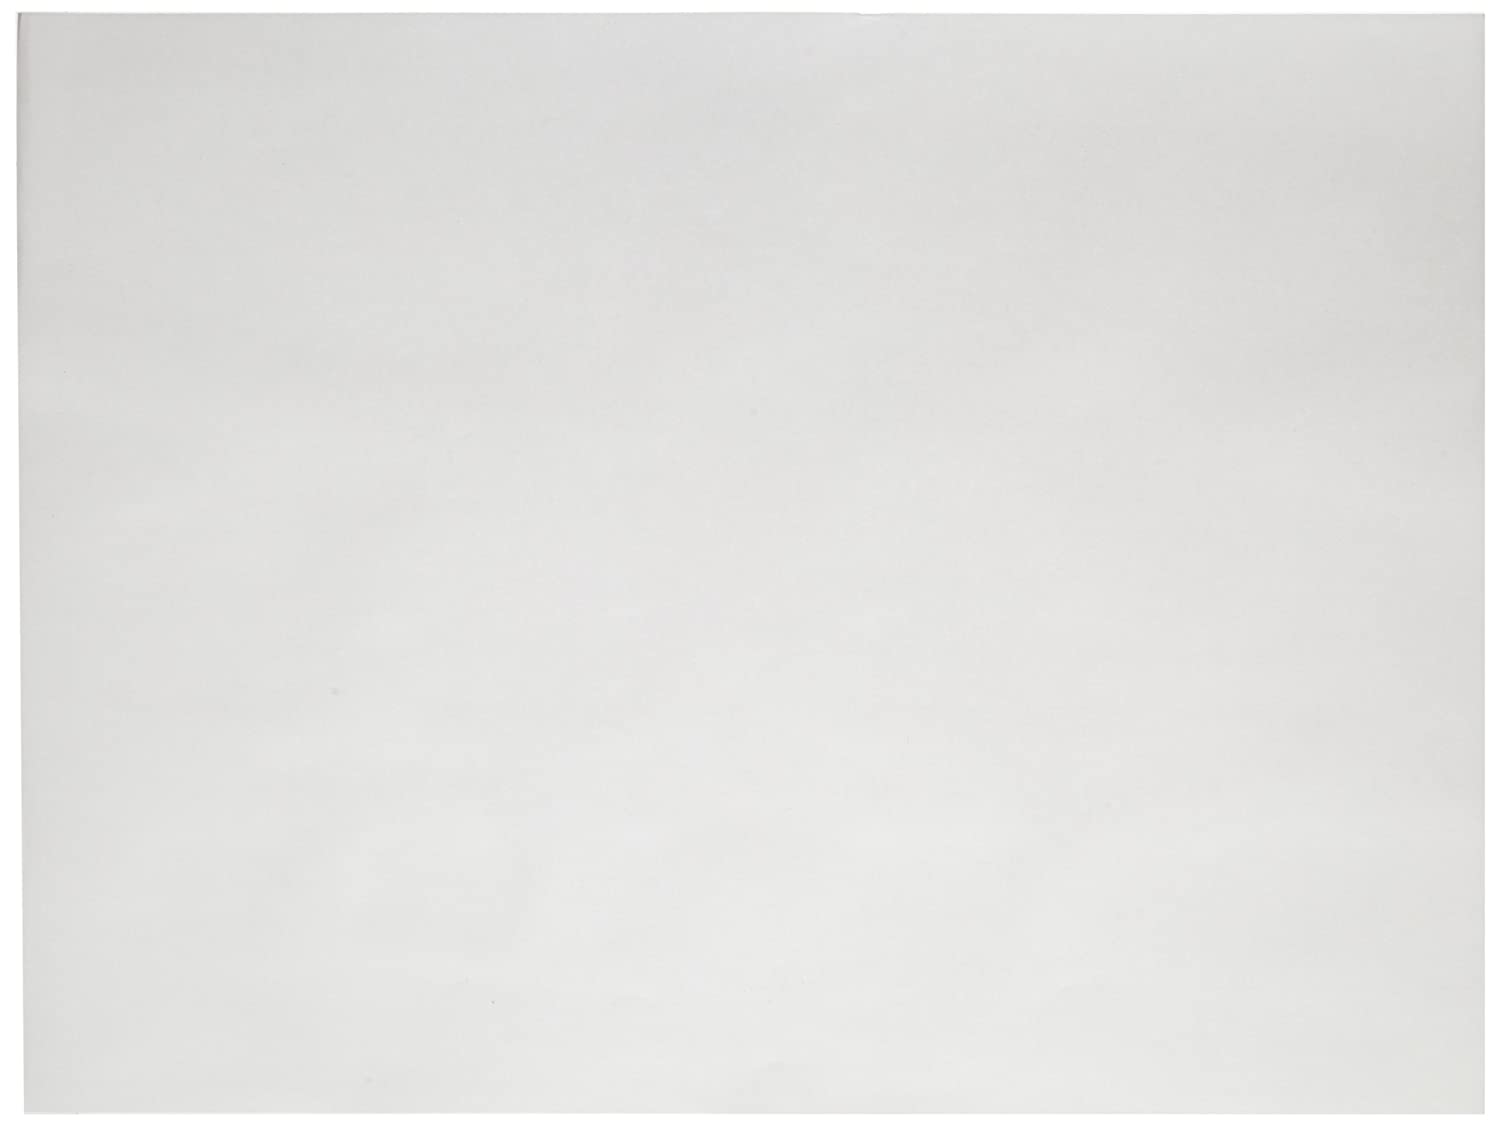 Sax Drawing Paper - 70 pound - 18 x 24 inches - Pack of 500 - White School Specialty 206303